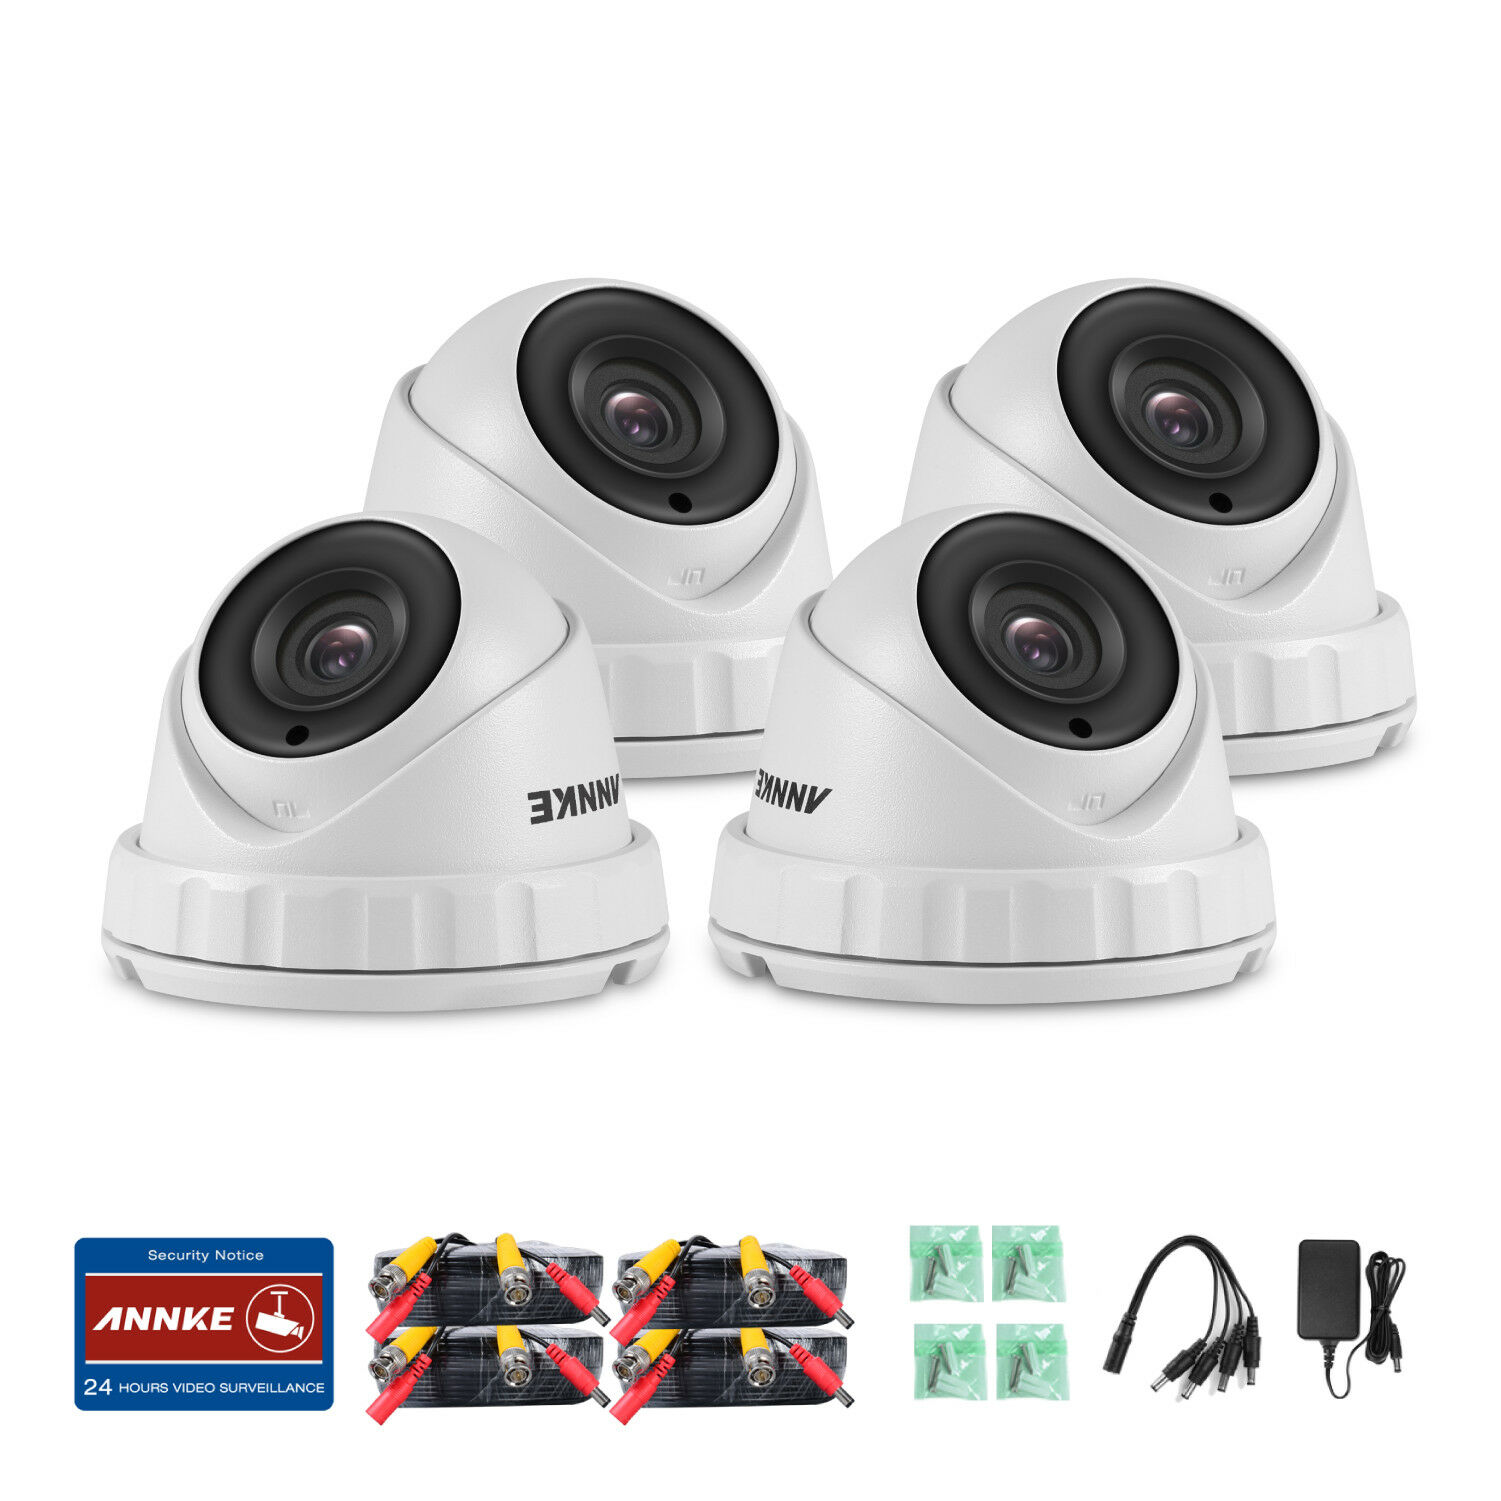 ANNKE Real 3MP Video Security Camera System 8CH H.264+ DVR Cloud Storage 1-4TB